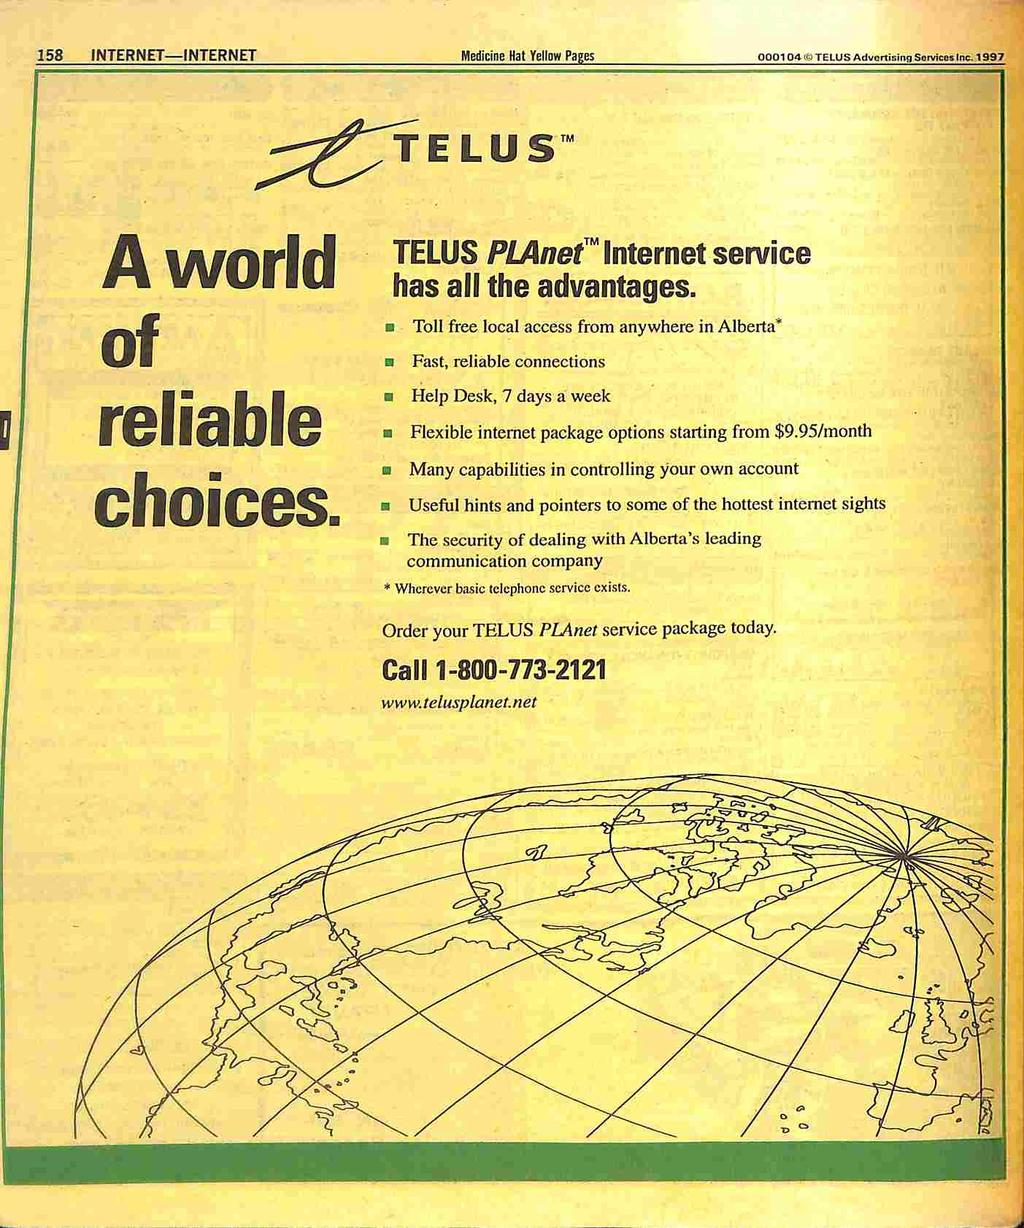 158 INTERNET INTERNET Hedirine Hat Yellow Pages 000104TELUS AdvonisinQ SorvicM In^ 1997 TELUS TM Aworid of reliable choices. TELUS PLAnet Internet service has all the advantages.